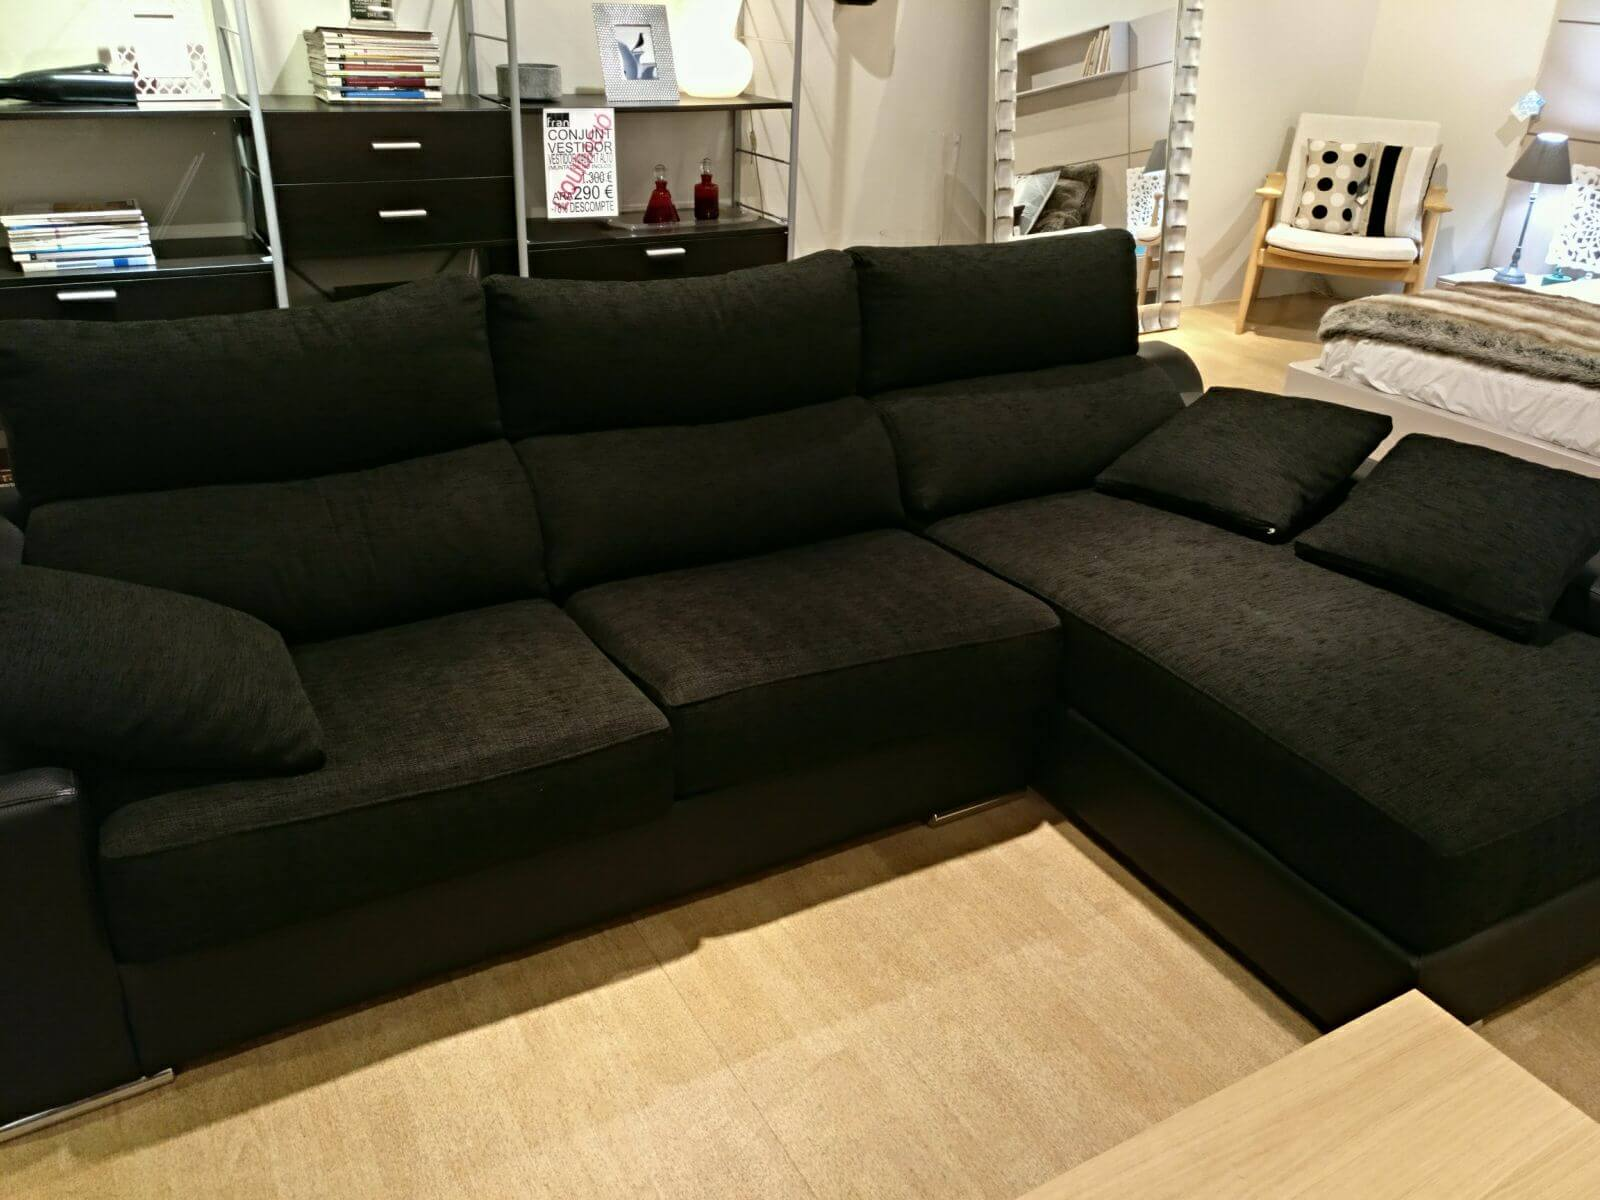 Outlet Sofas Barcelona Sofá Con Chaise Longue Tienda Muebles Fran Barcelona